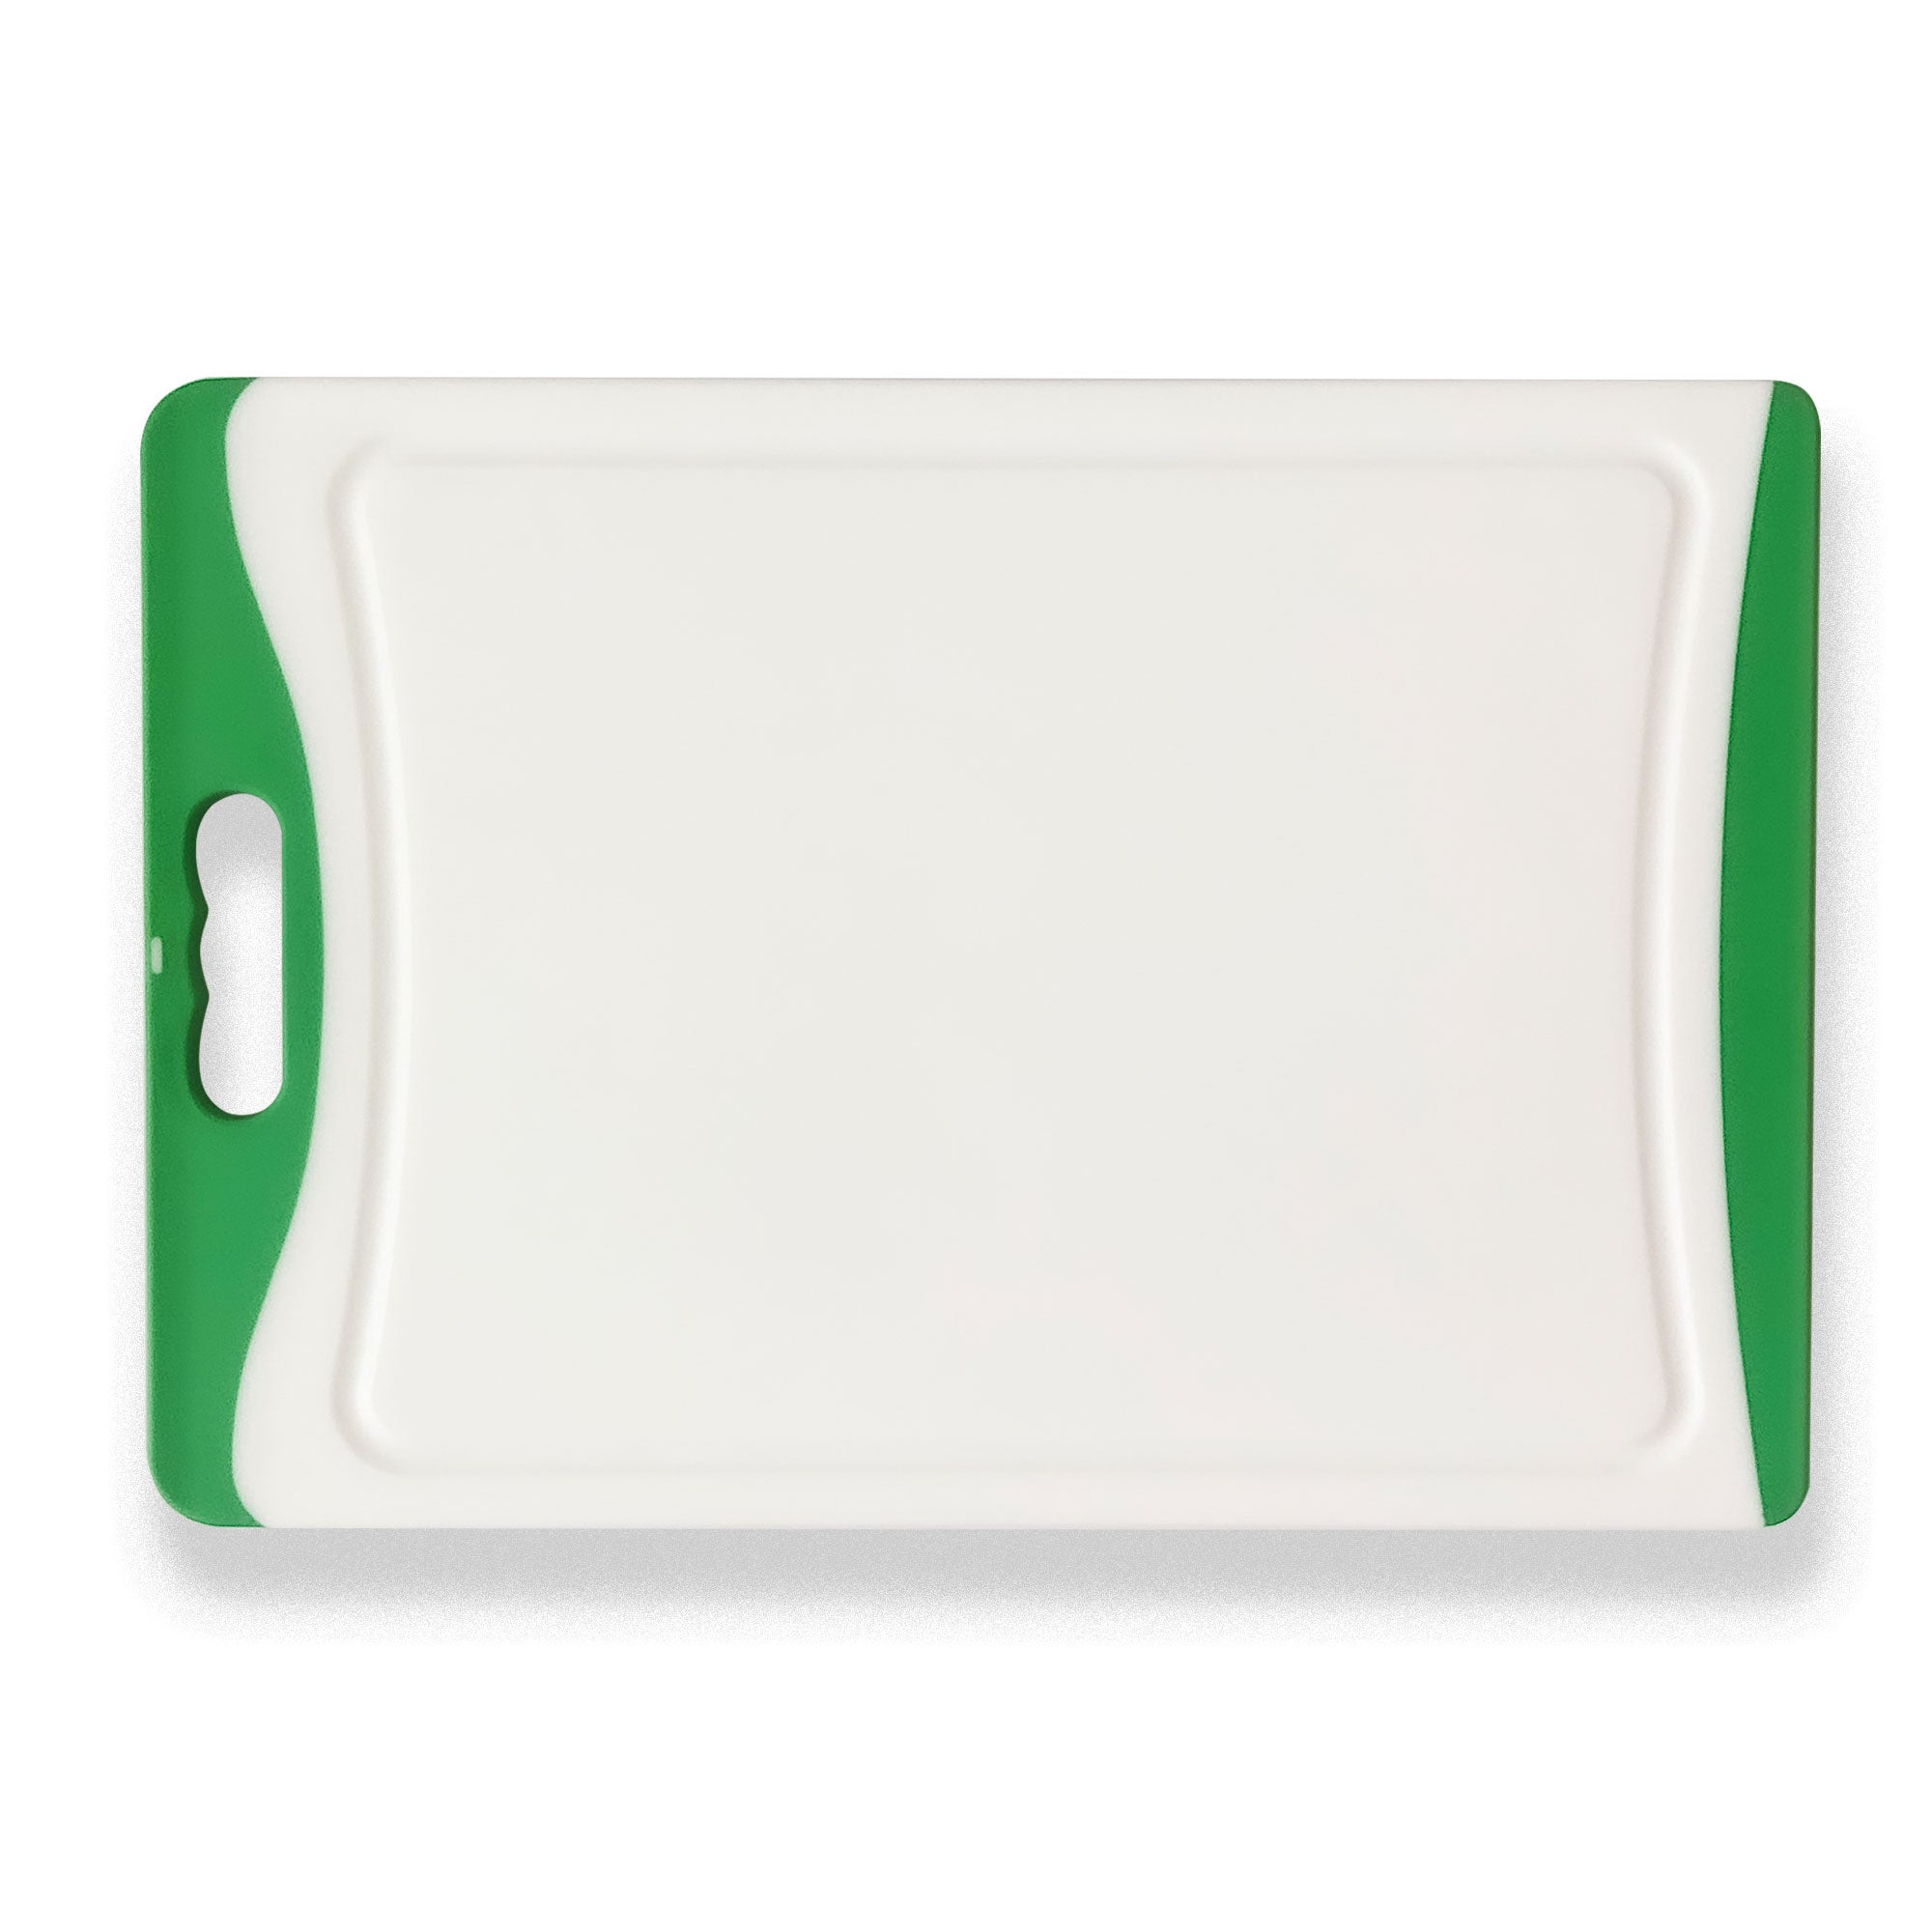 Large Plastic Chopping Board - Green 16.9""